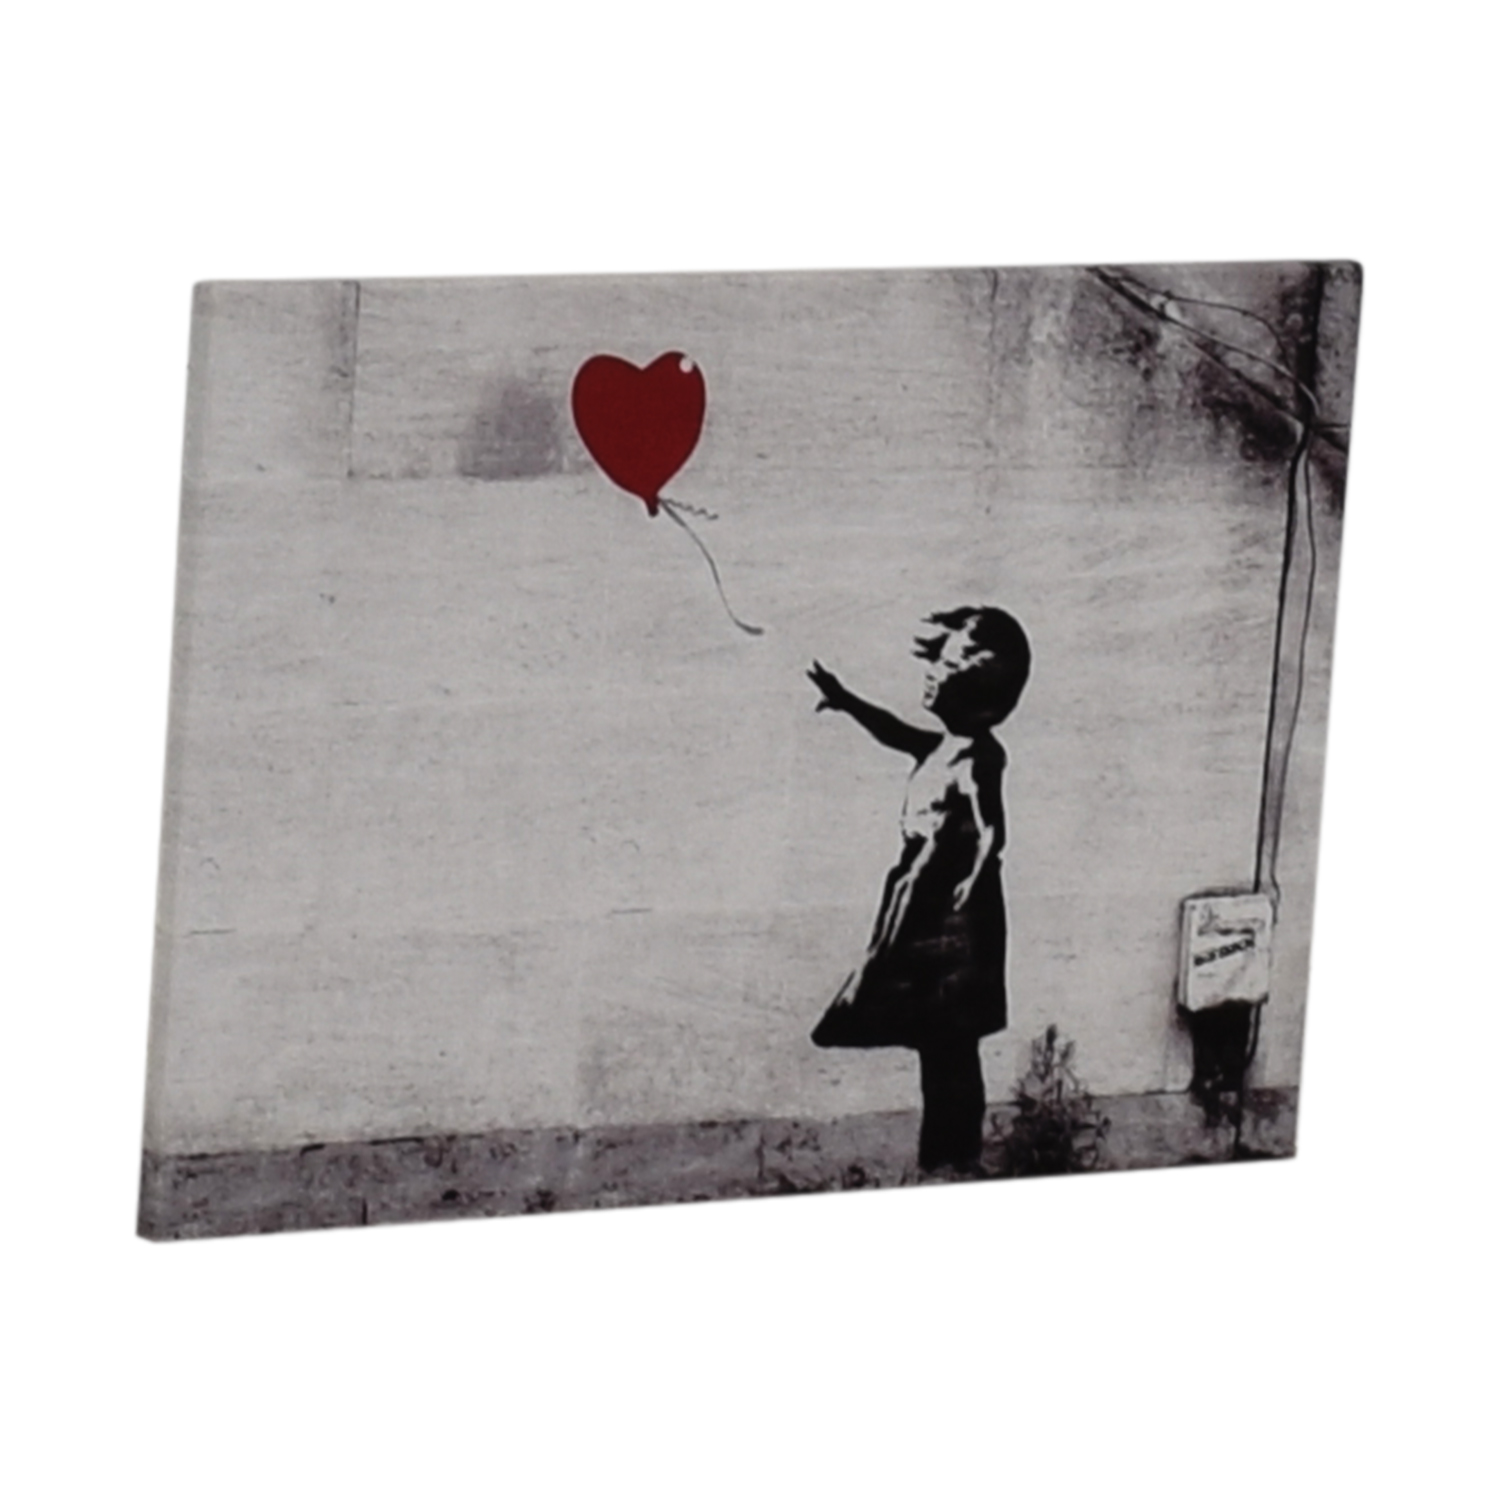 Banksy Banksy Girl with Red Balloon Wall Art